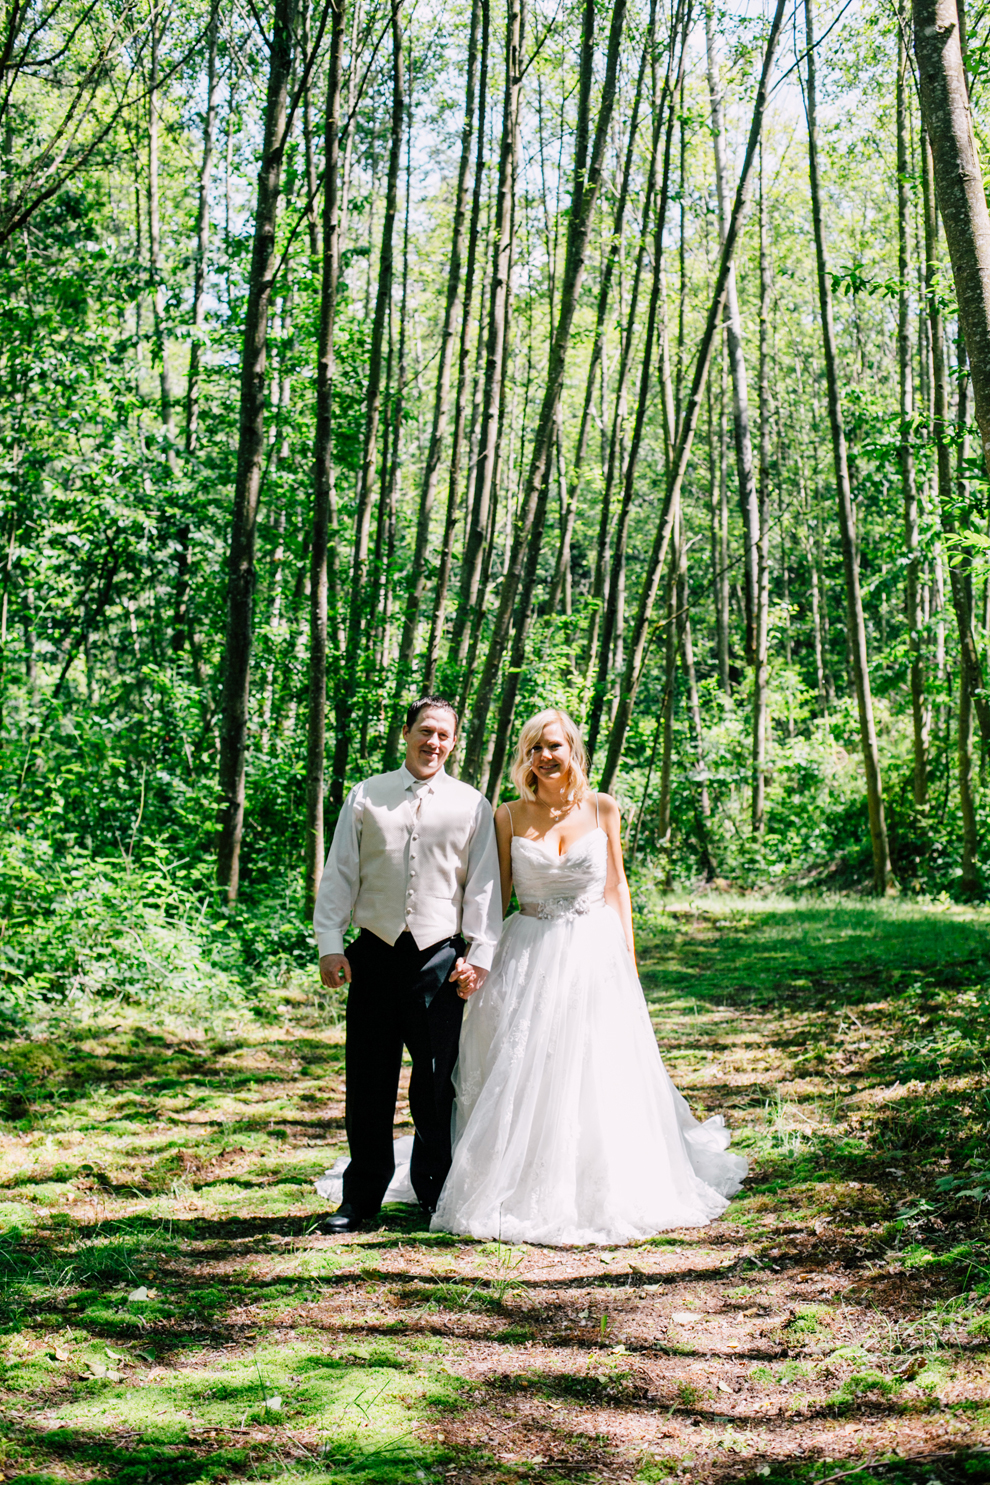 021-lynden-bellingham-wedding-photographer-family-farm-katheryn-moran.jpg